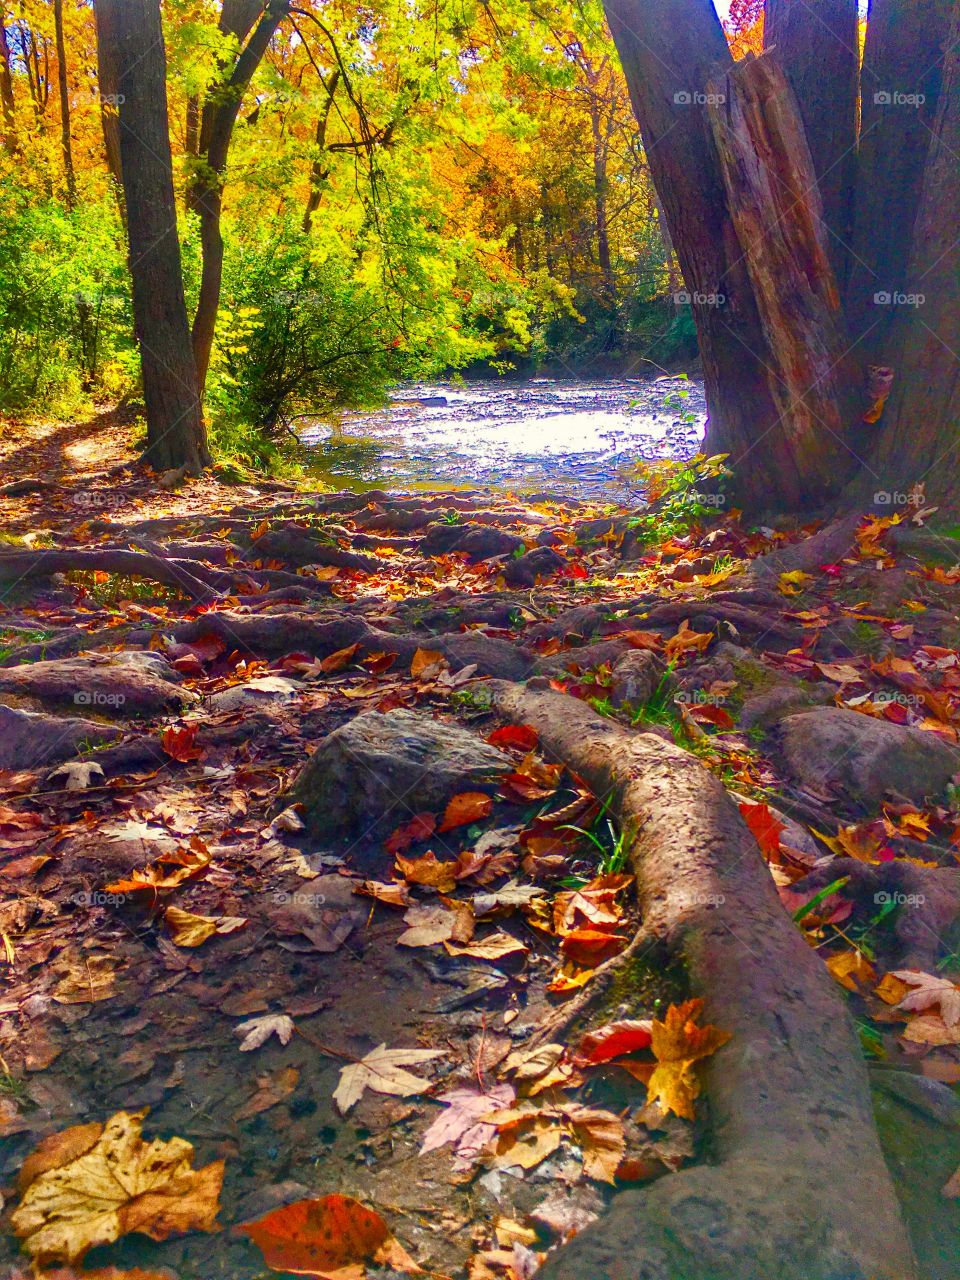 Autumn in Michigan by river.